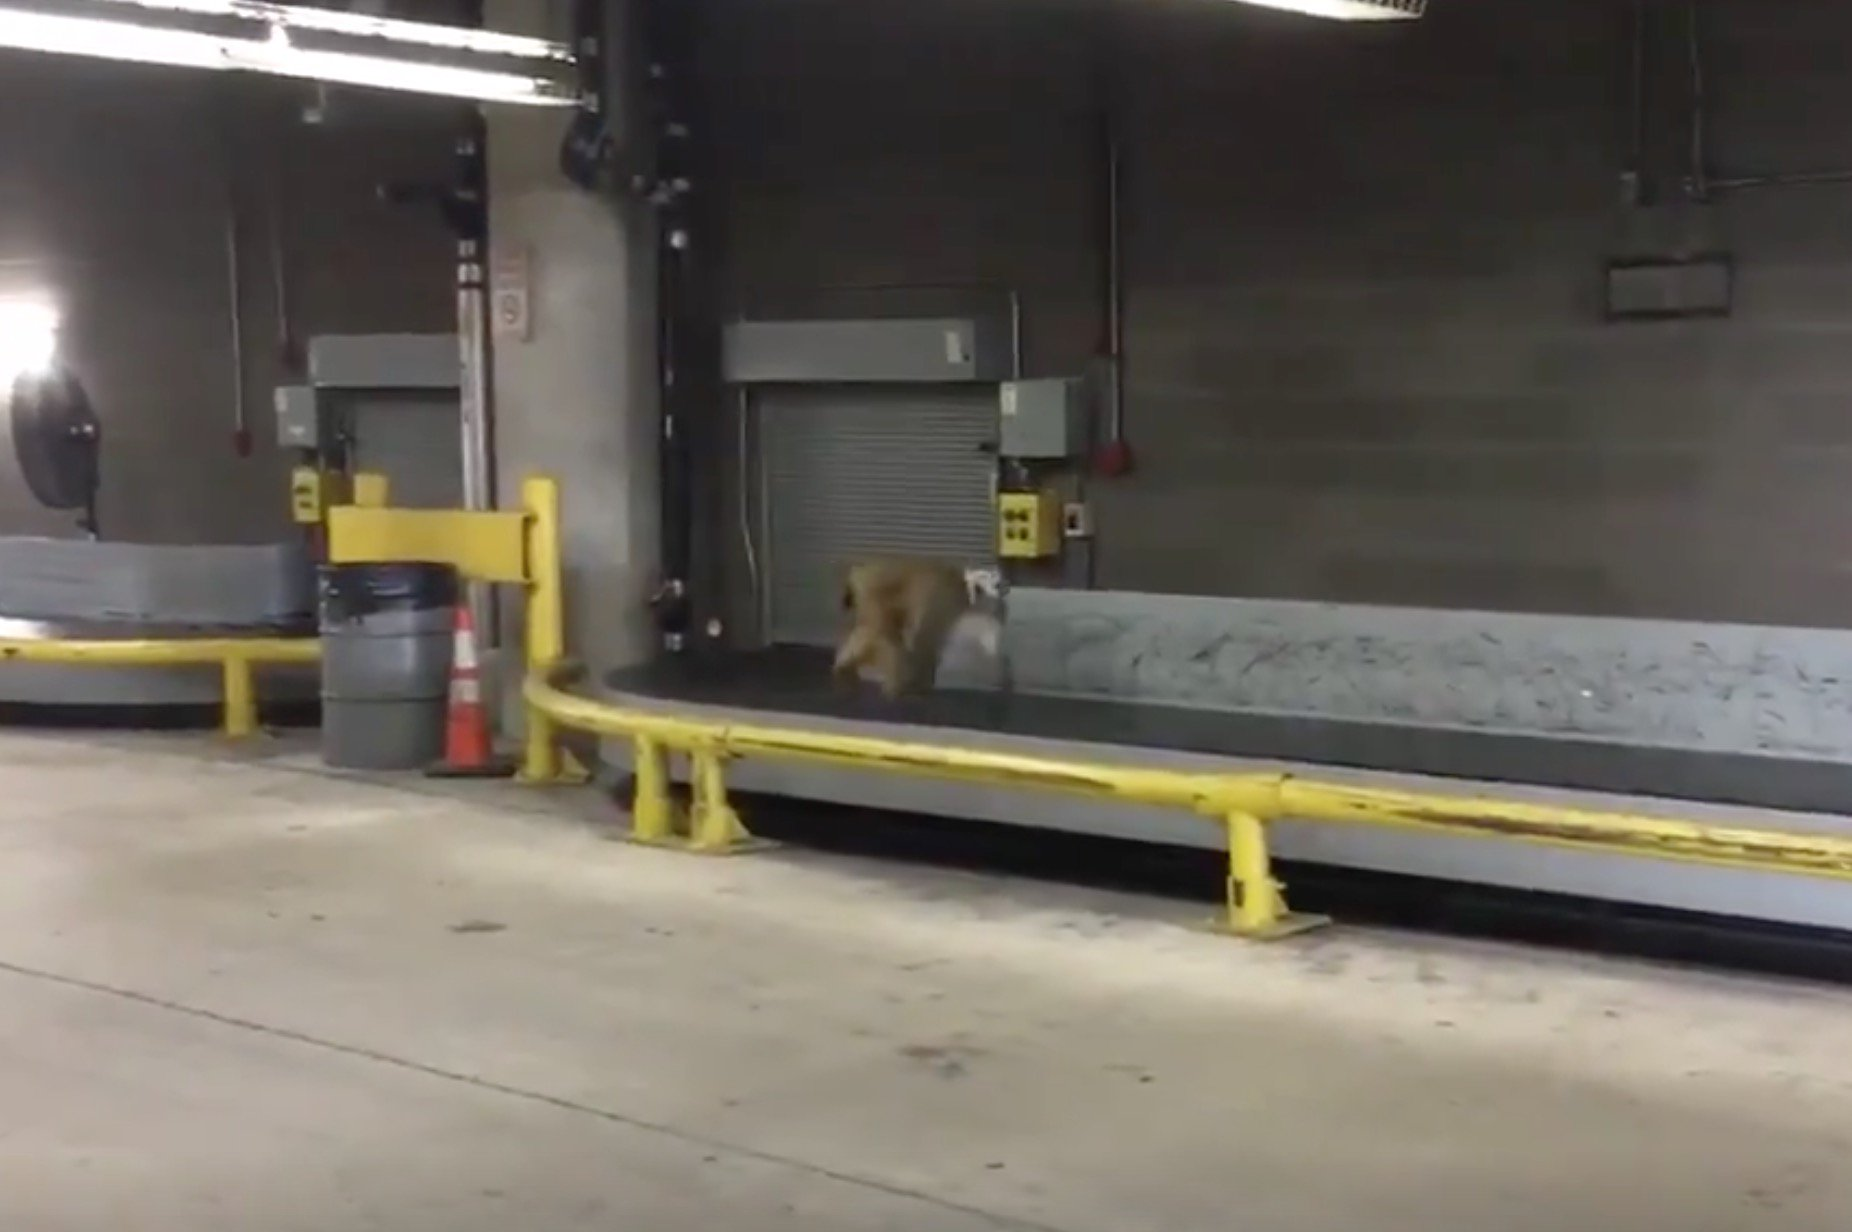 A Baboon Broke Free and Ran Loose Around San Antonio Airport Today https://t.co/9SigfqxgLW https://t.co/ZF7h9k66MV